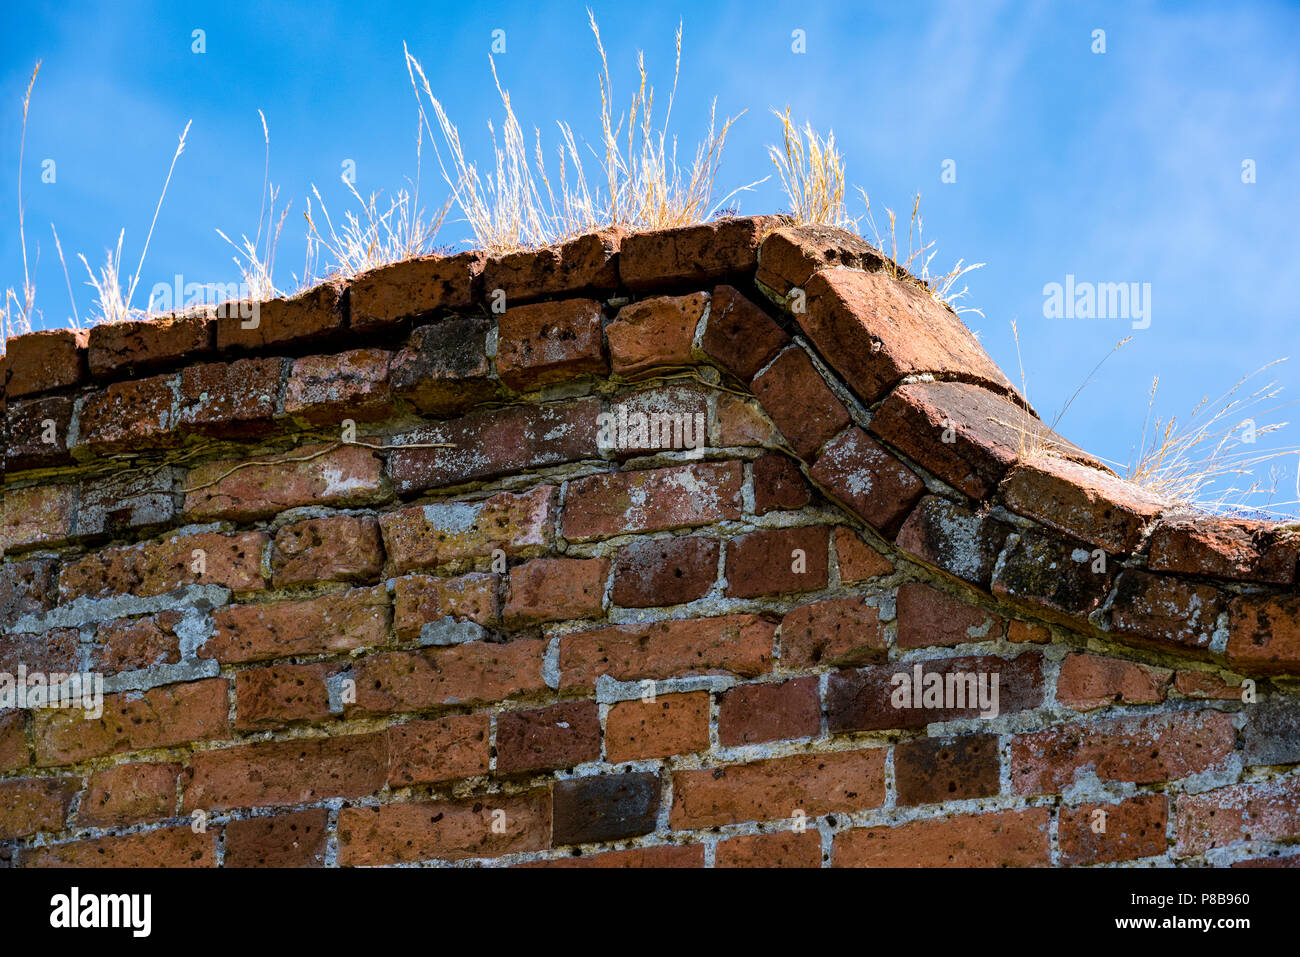 Marks Hall Gardens and Arboretum Coggeshall Colchester, Essex, UK.18th century brick-wall.1700's, architecture, brickwork. - Stock Image